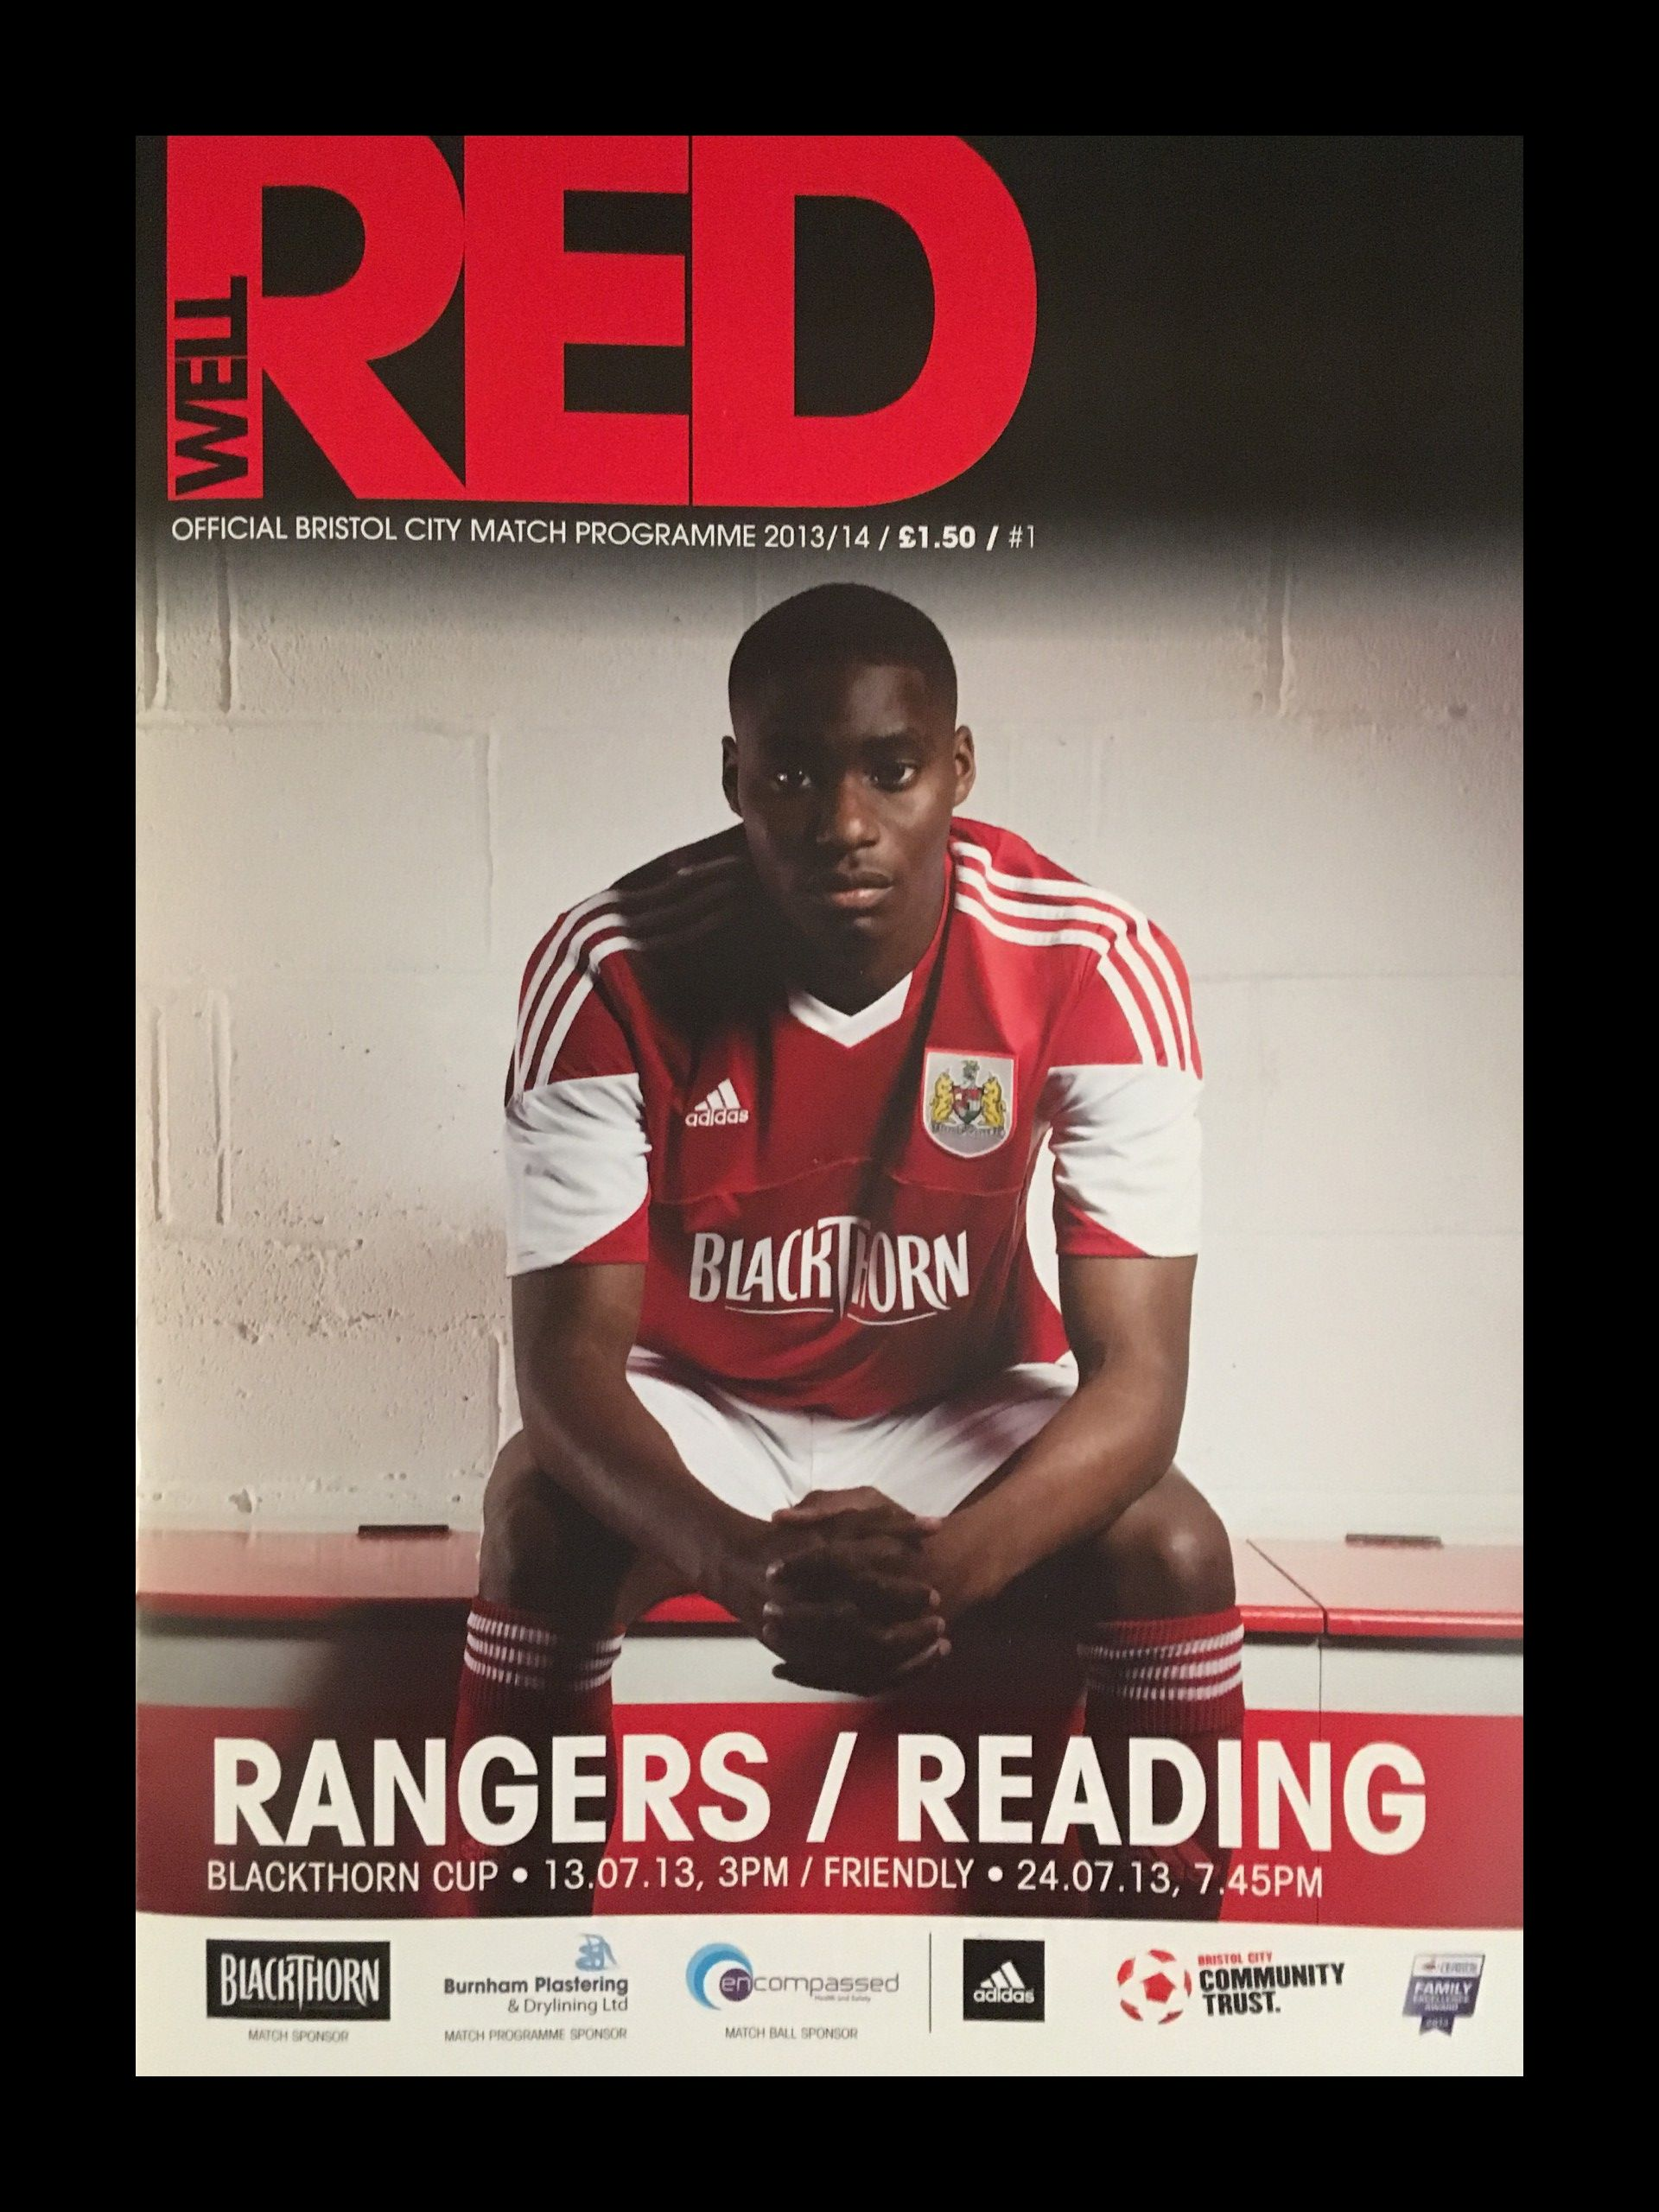 Bristol City v Reading 24-07-2013 Programme